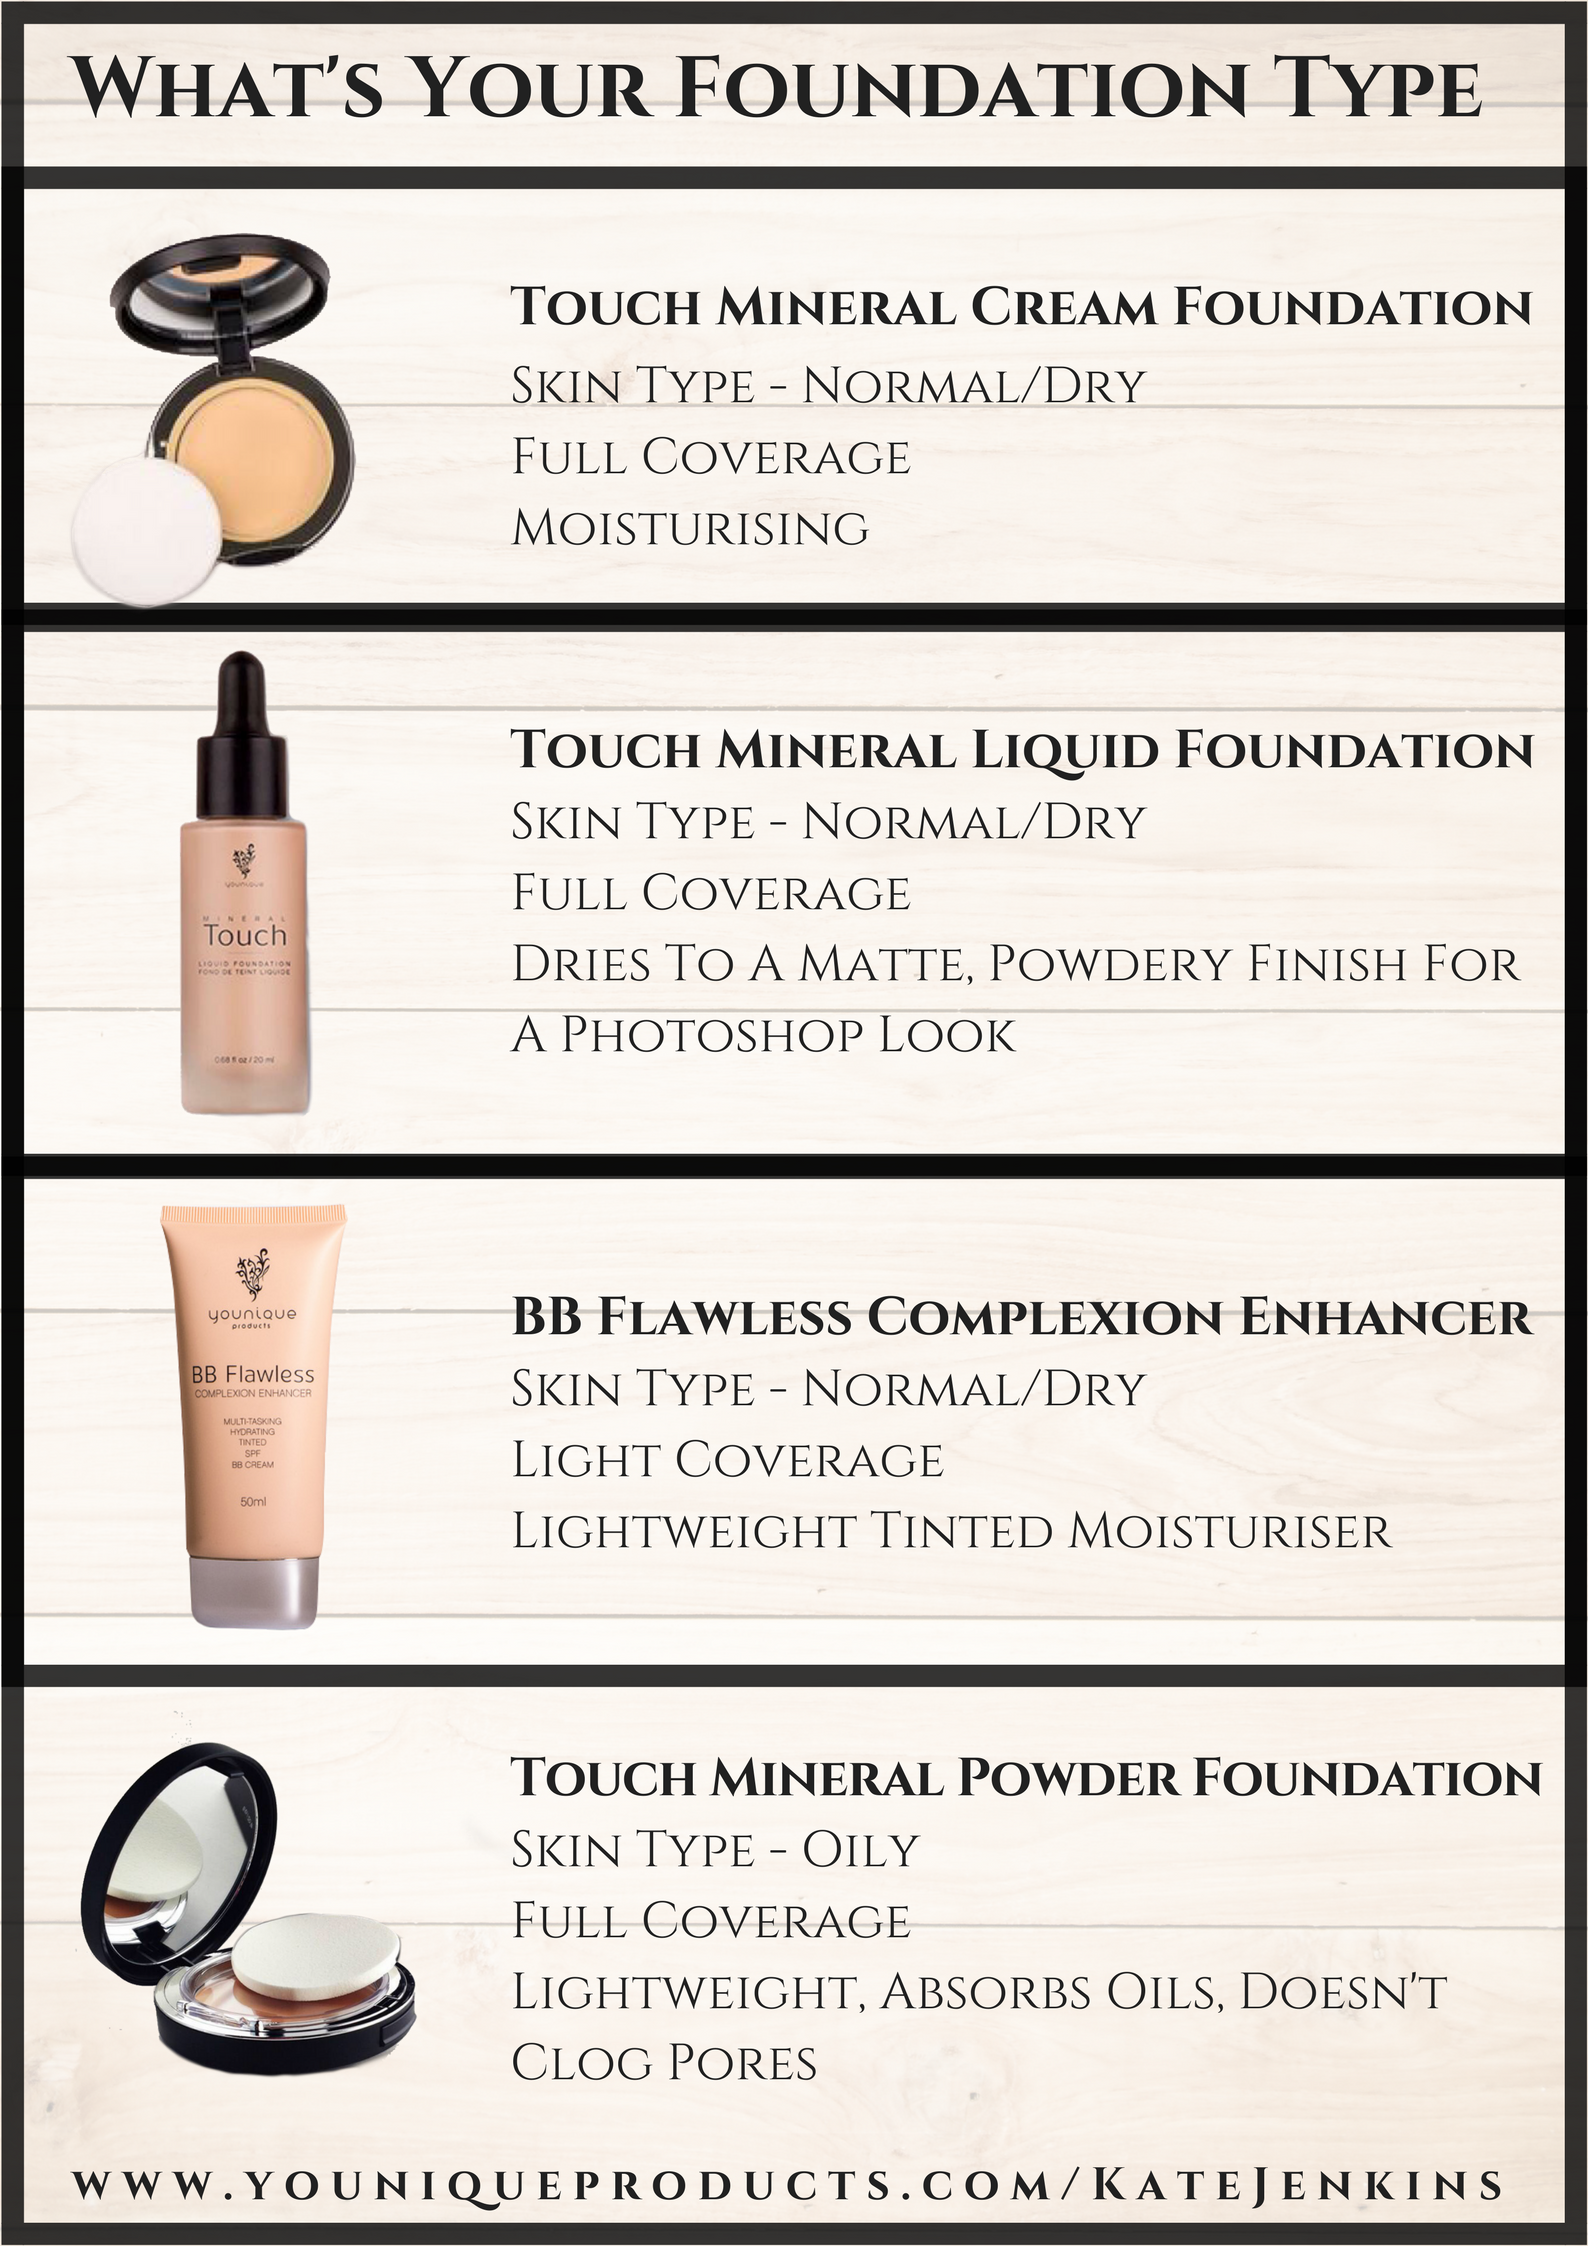 Get the right foundation for your skin type This guide